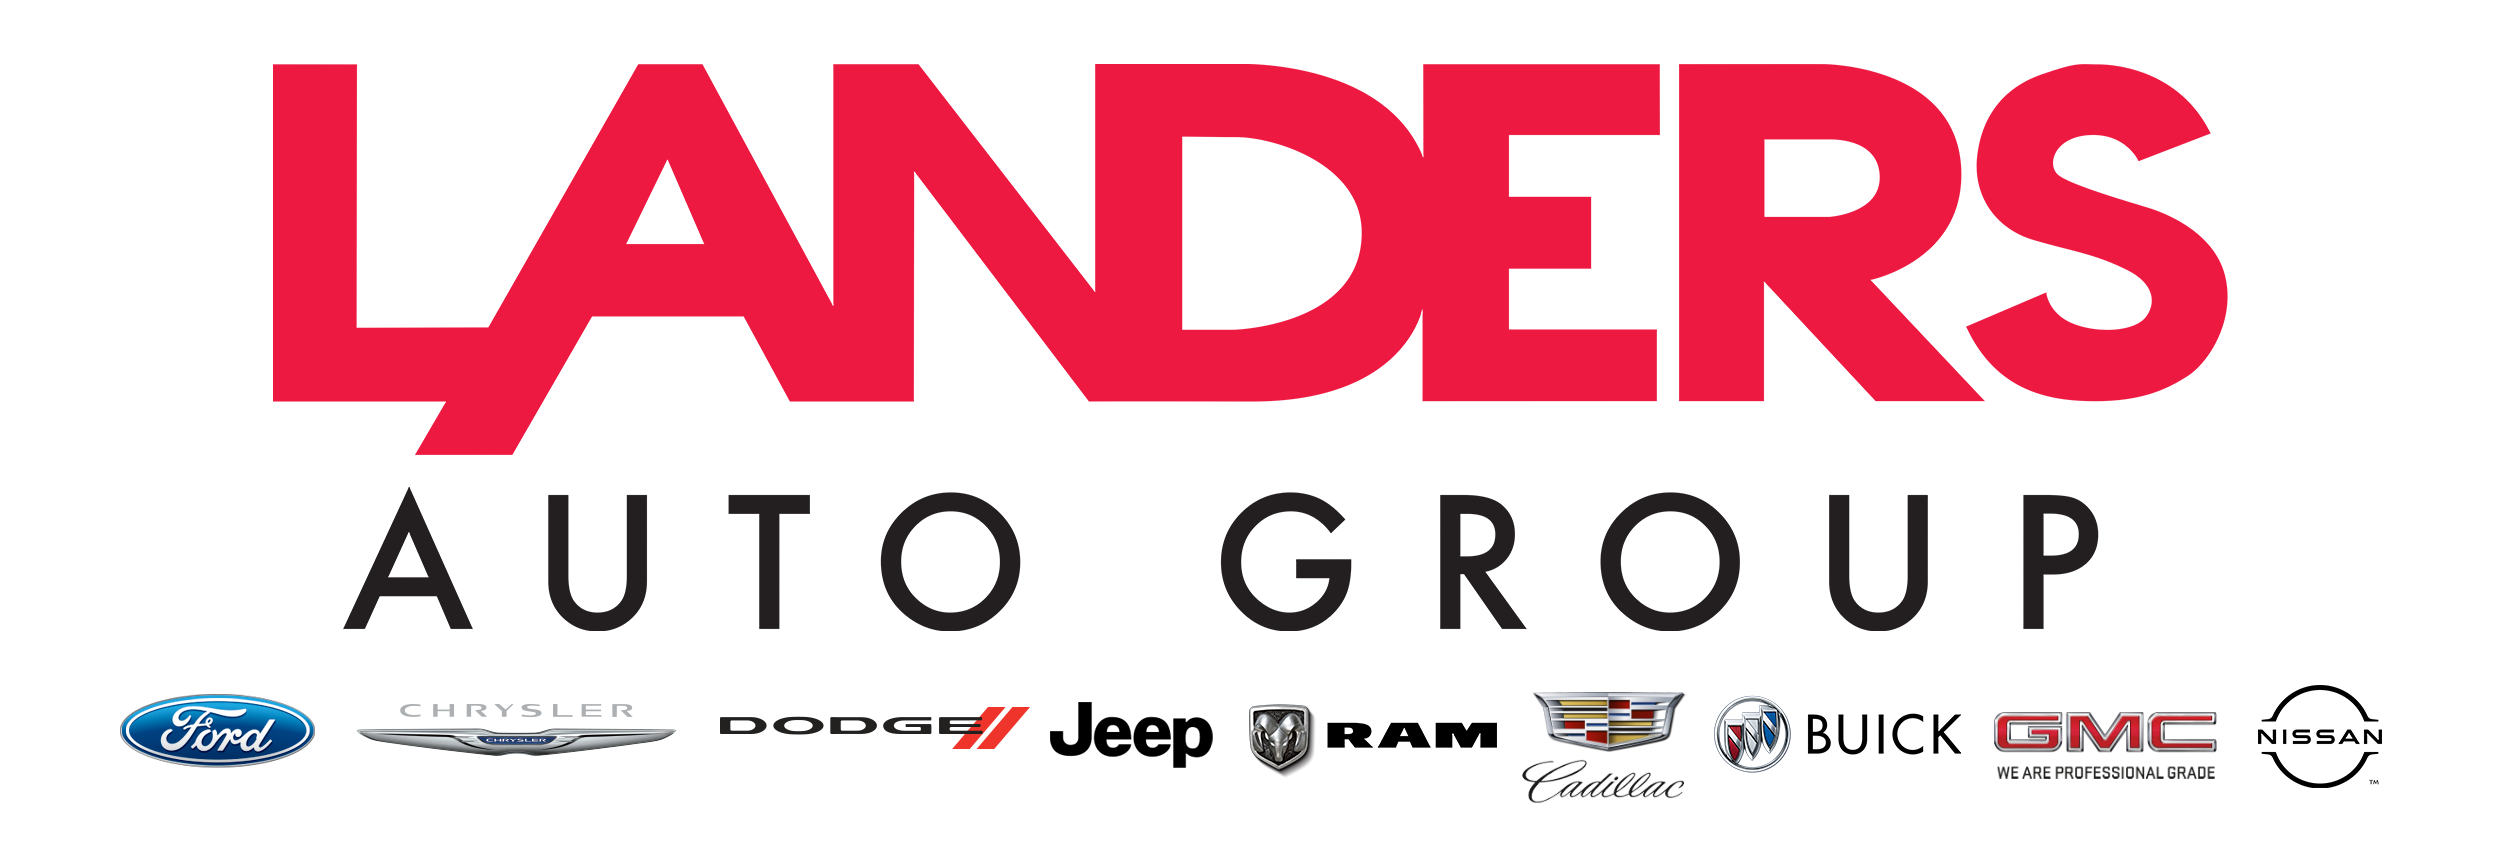 Landers Auto Group Logo 8-13-20.png